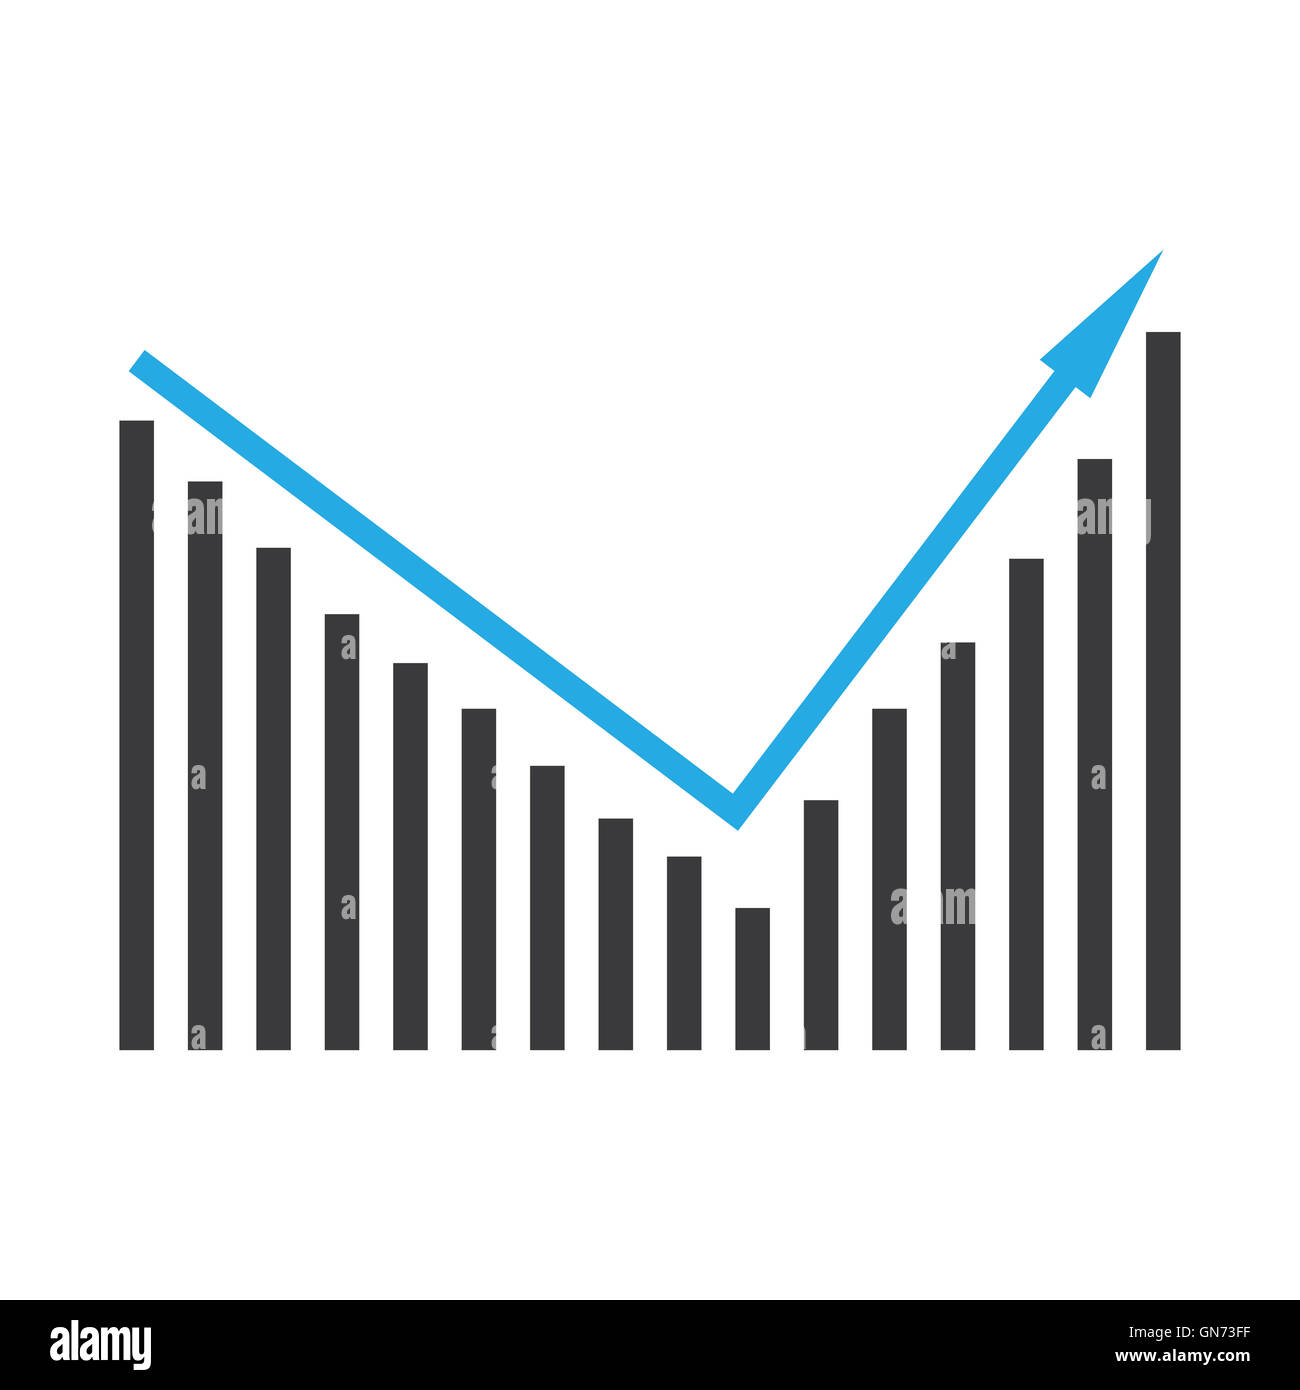 Pictorial diagram of ascending bar graph Stock Photo: 116326435 - Alamy